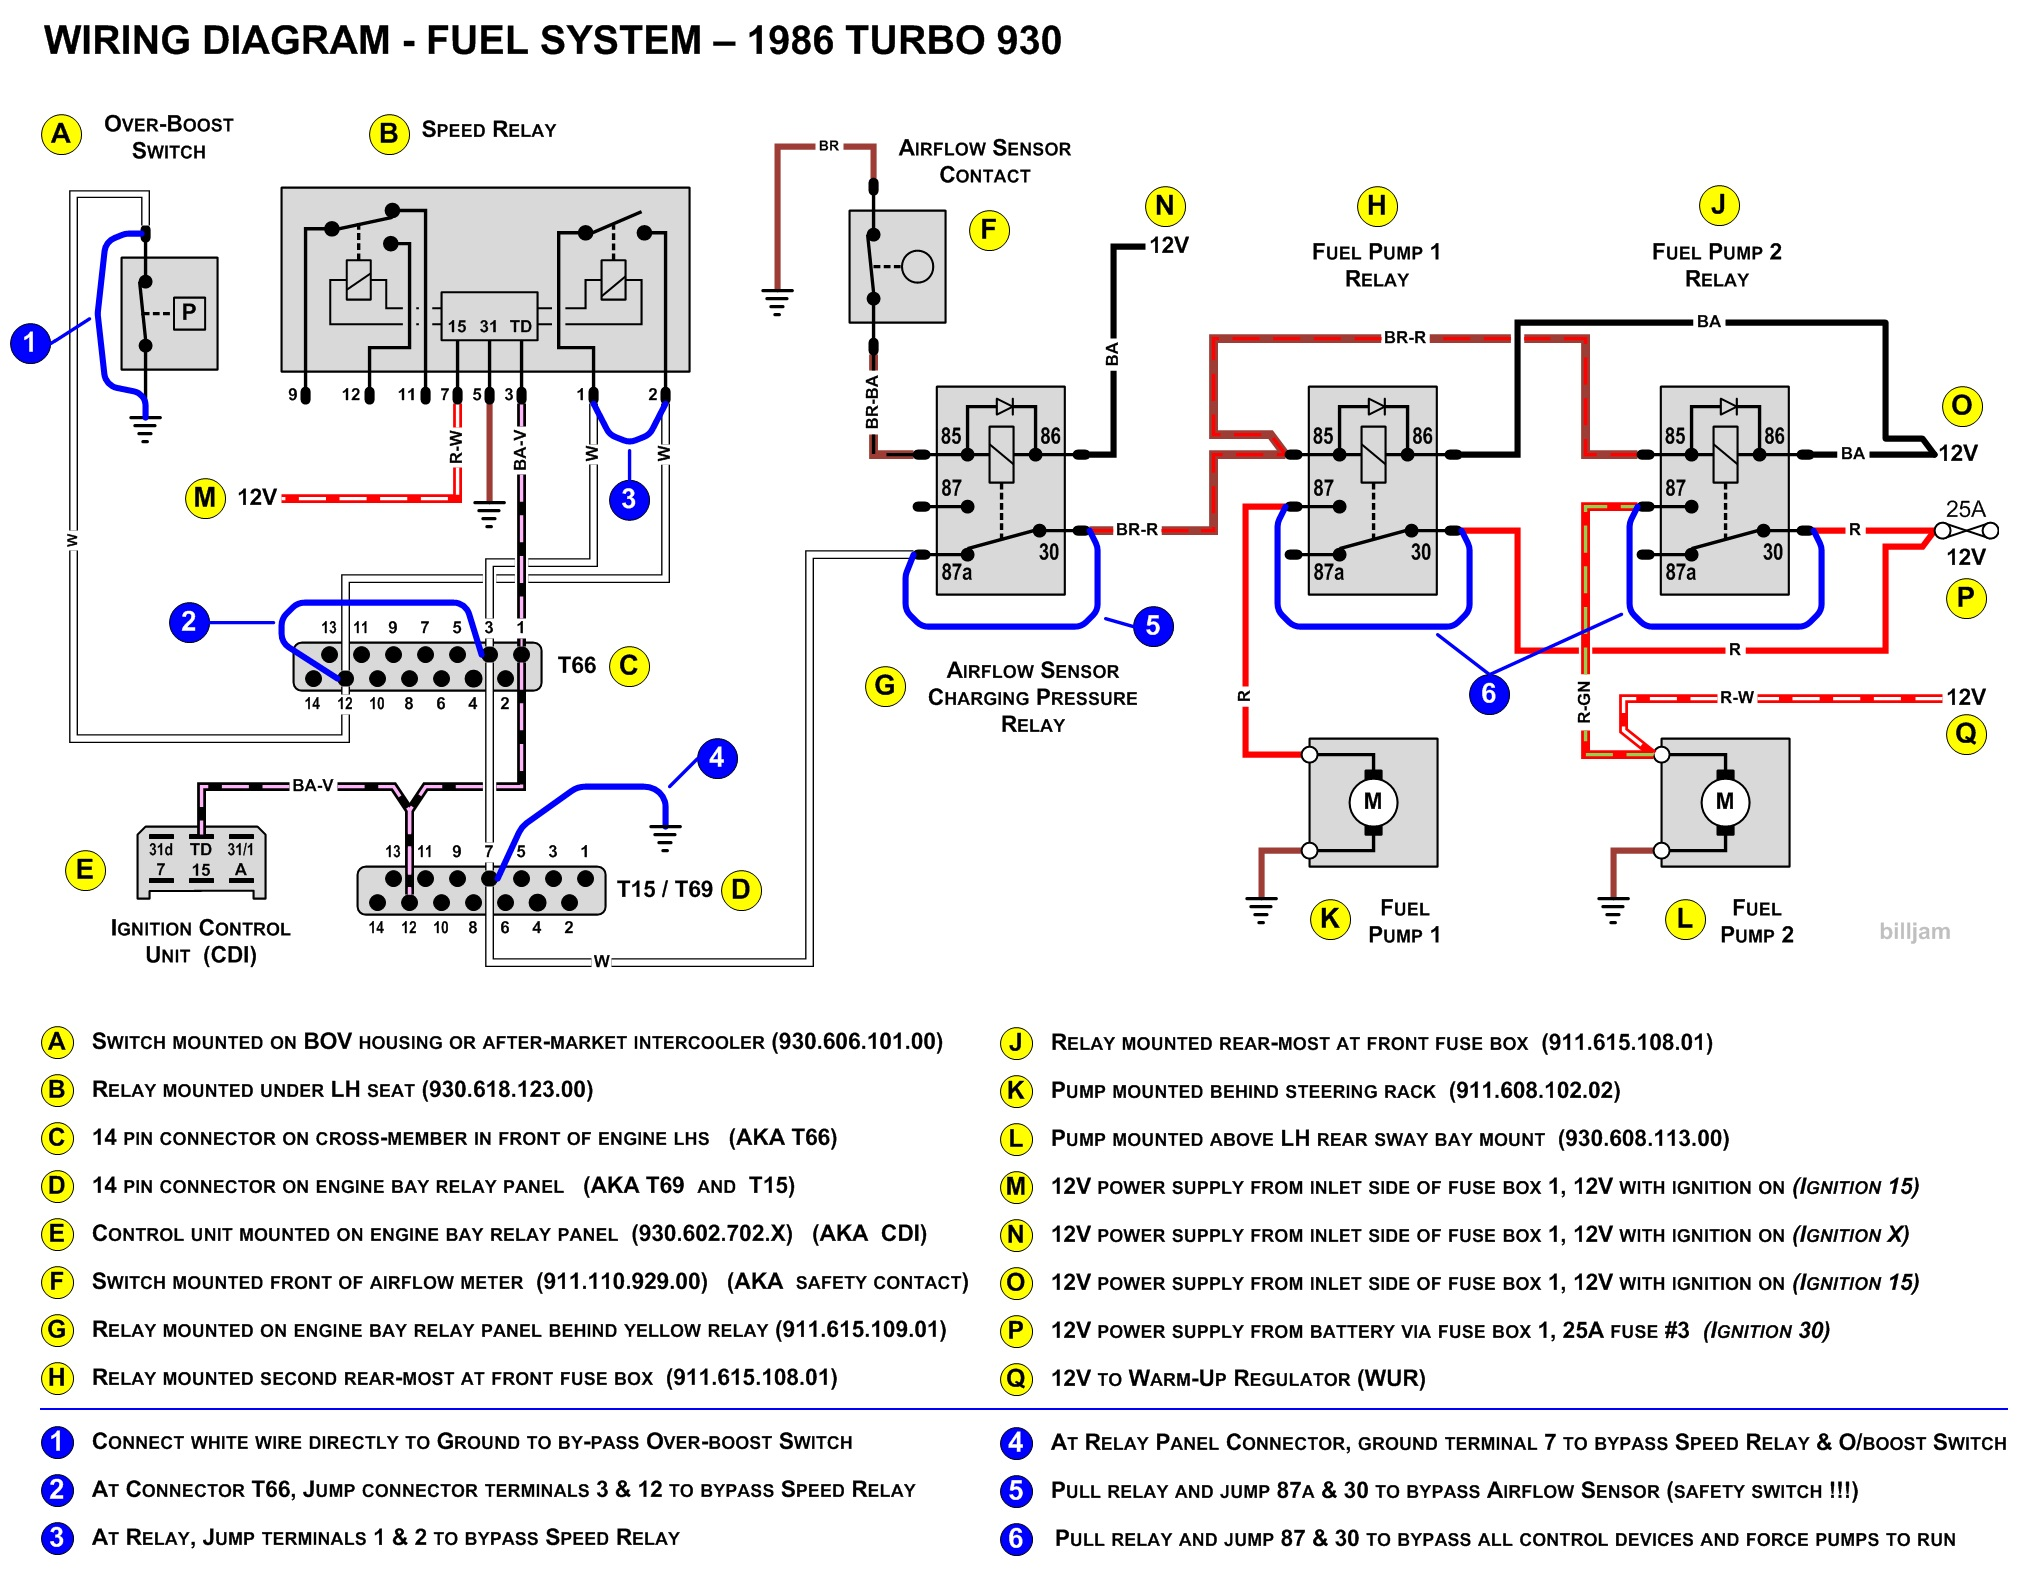 86 porsche 930 fuel system wiring diagram jumpers made a fuse box label for my 88 page 4 pelican parts technical bbs 1986 camaro fuse box diagram at readyjetset.co